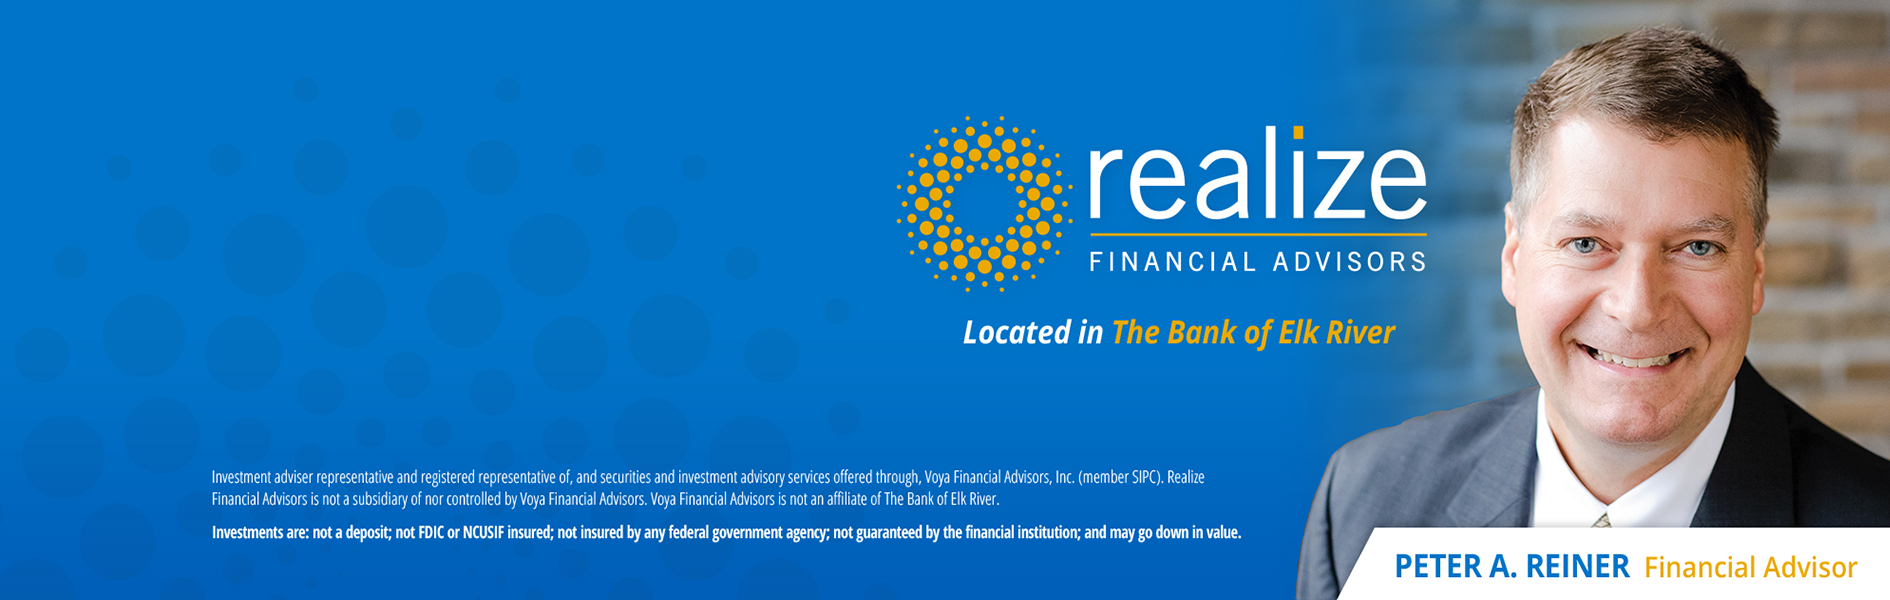 Image of Pete Reiner, Financial Advisor with Realize Financial Advisors.